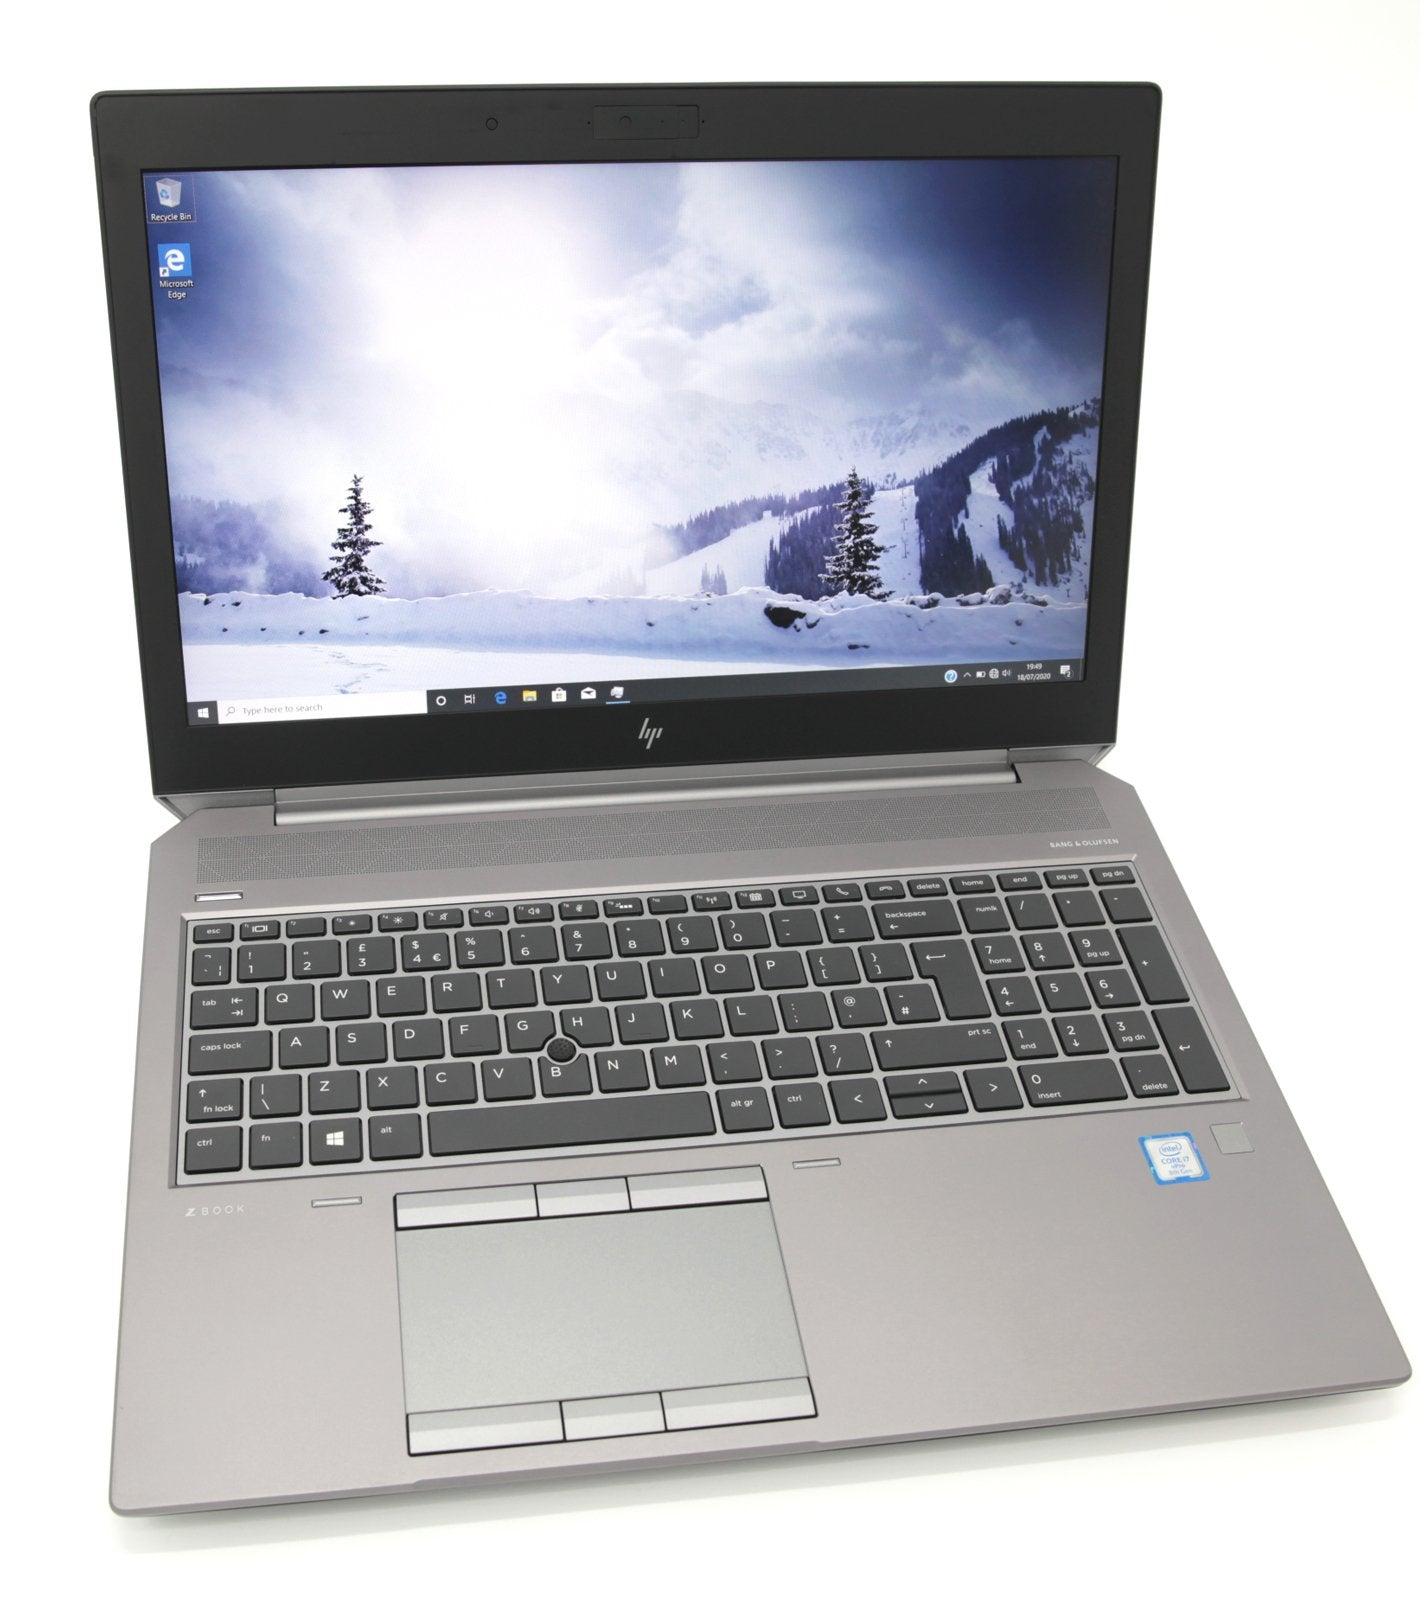 HP ZBook 15 G5 Laptop: Core i7-8850H 16GB RAM 512GB, P2000 Warranty (Grade C) - CruiseTech